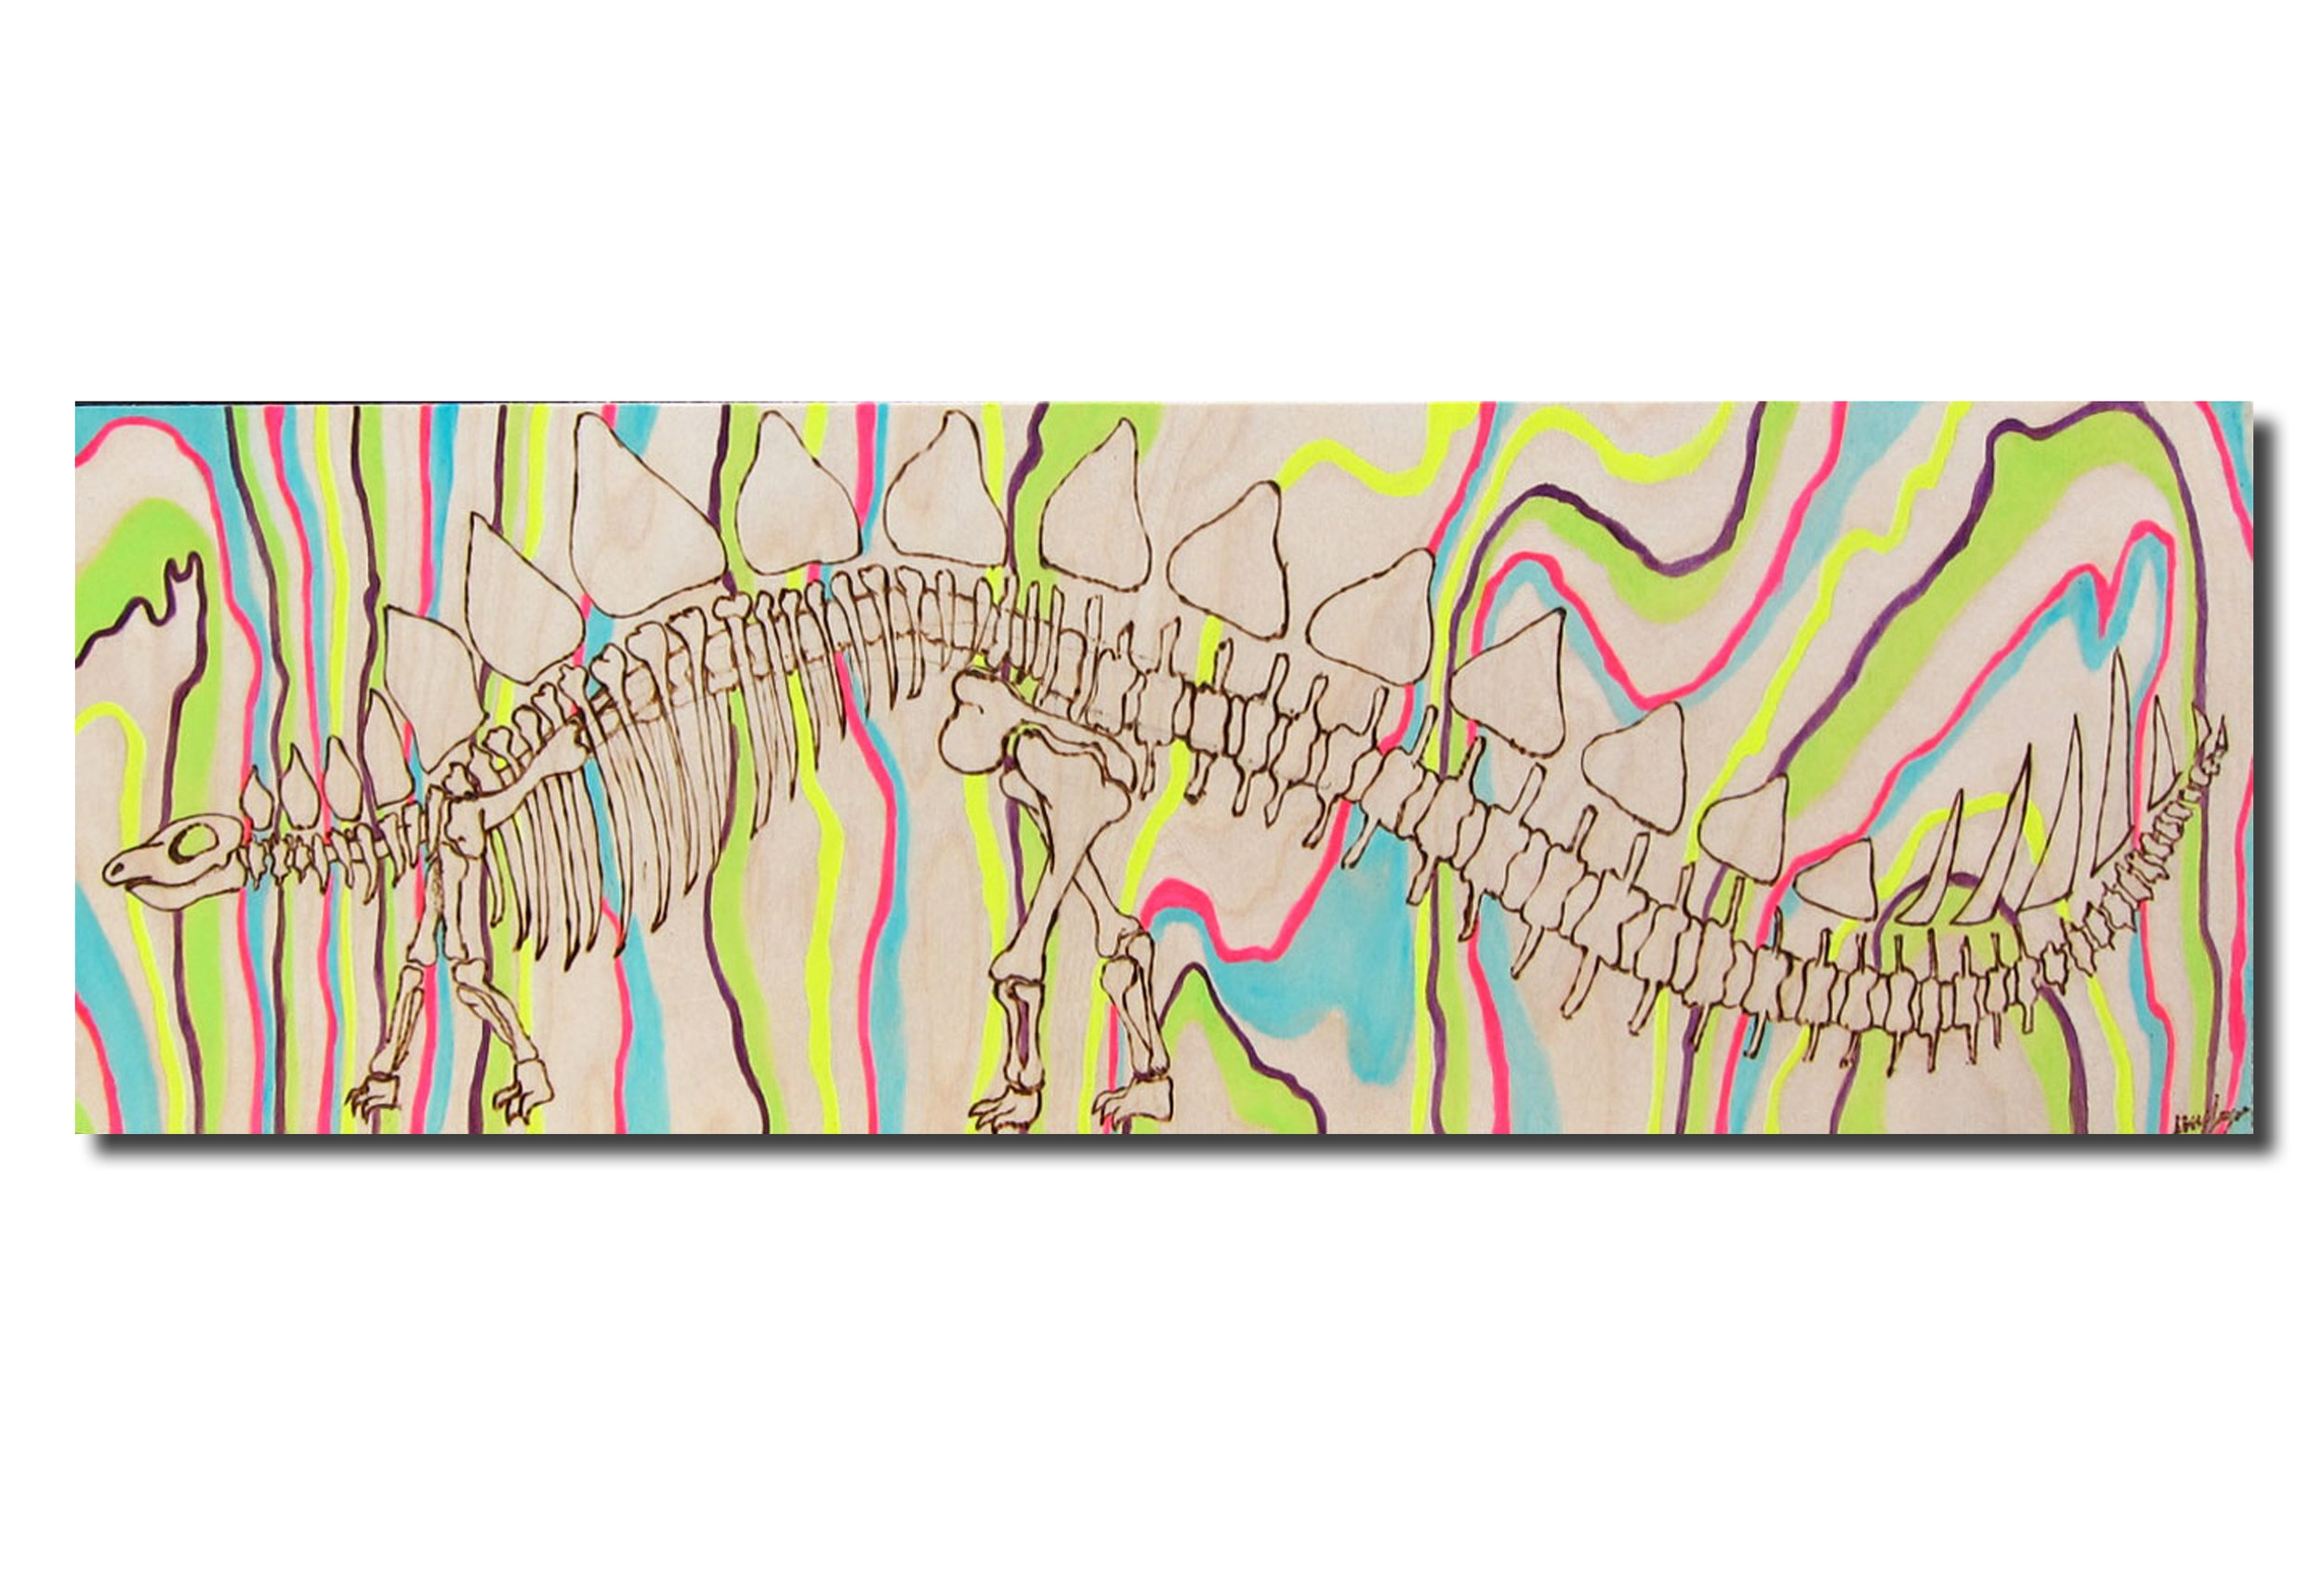 Megasaura$$ - Lizzy Layne12 inches x 36 inchesMixed Media Wood Burning$550